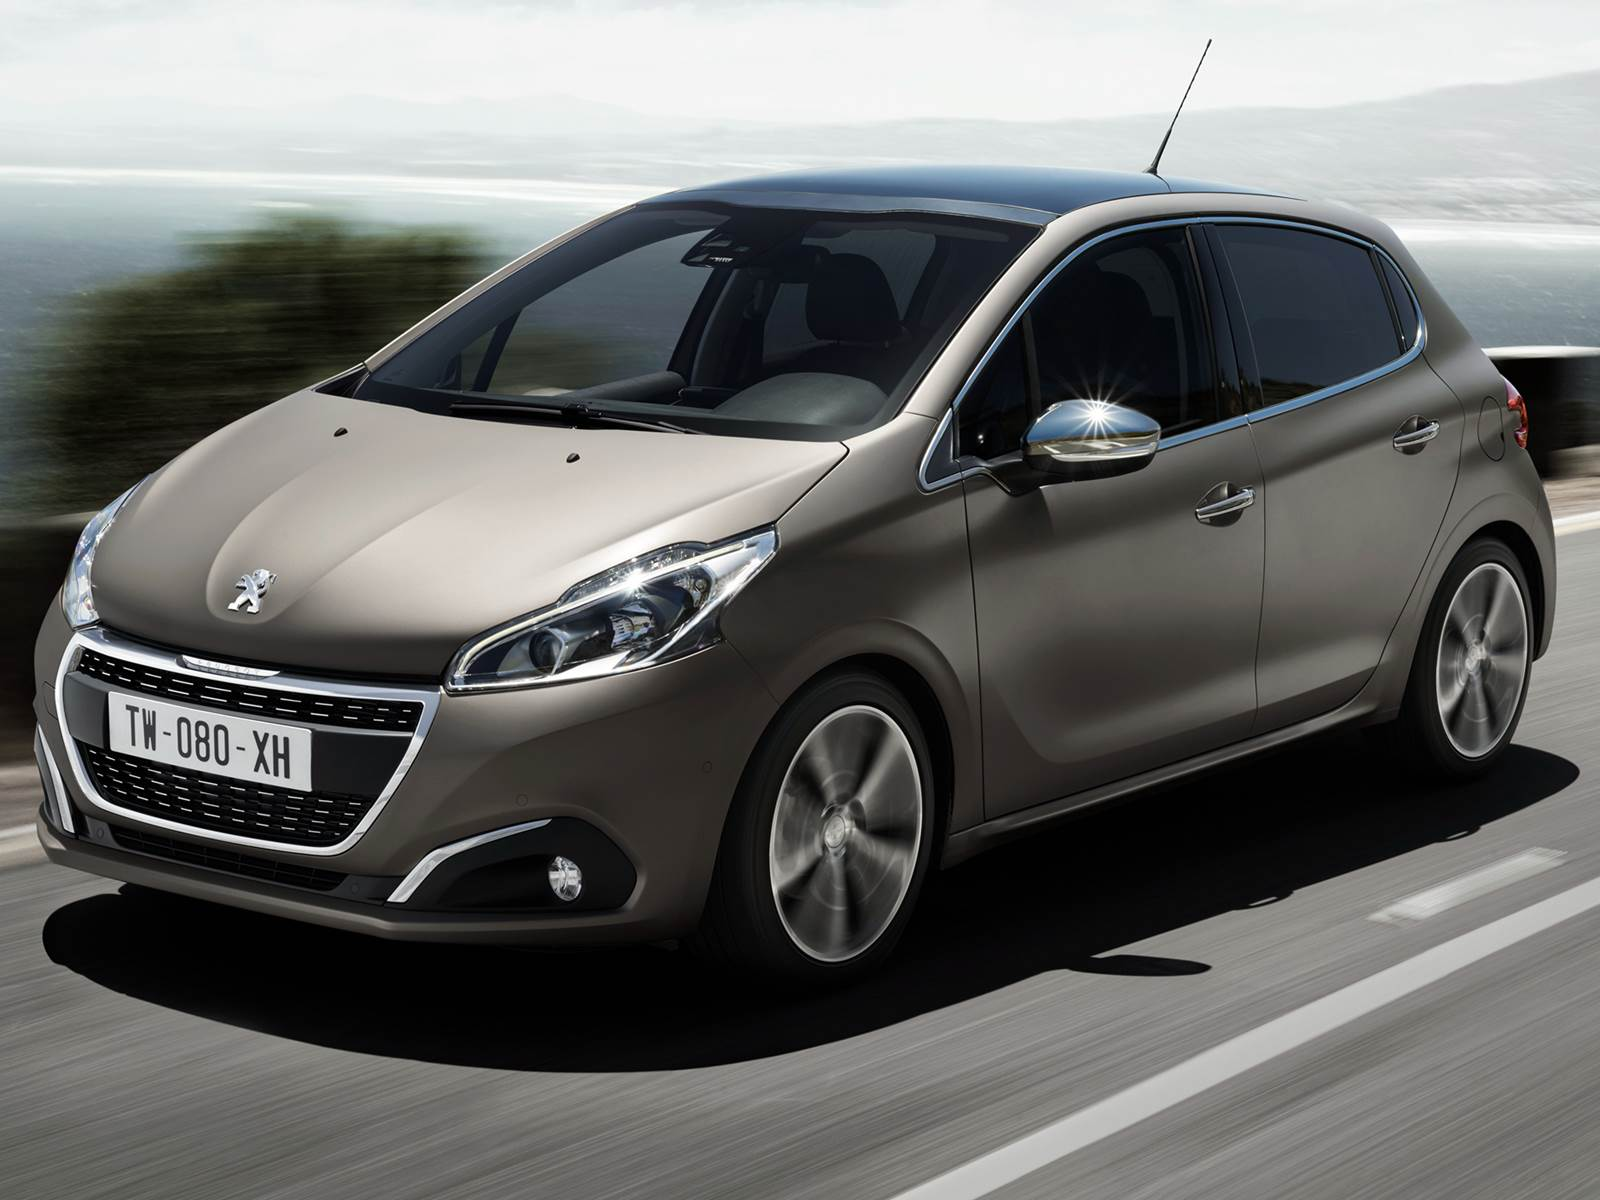 2016 Peugeot 208 – pictures, information and specs - Auto ...